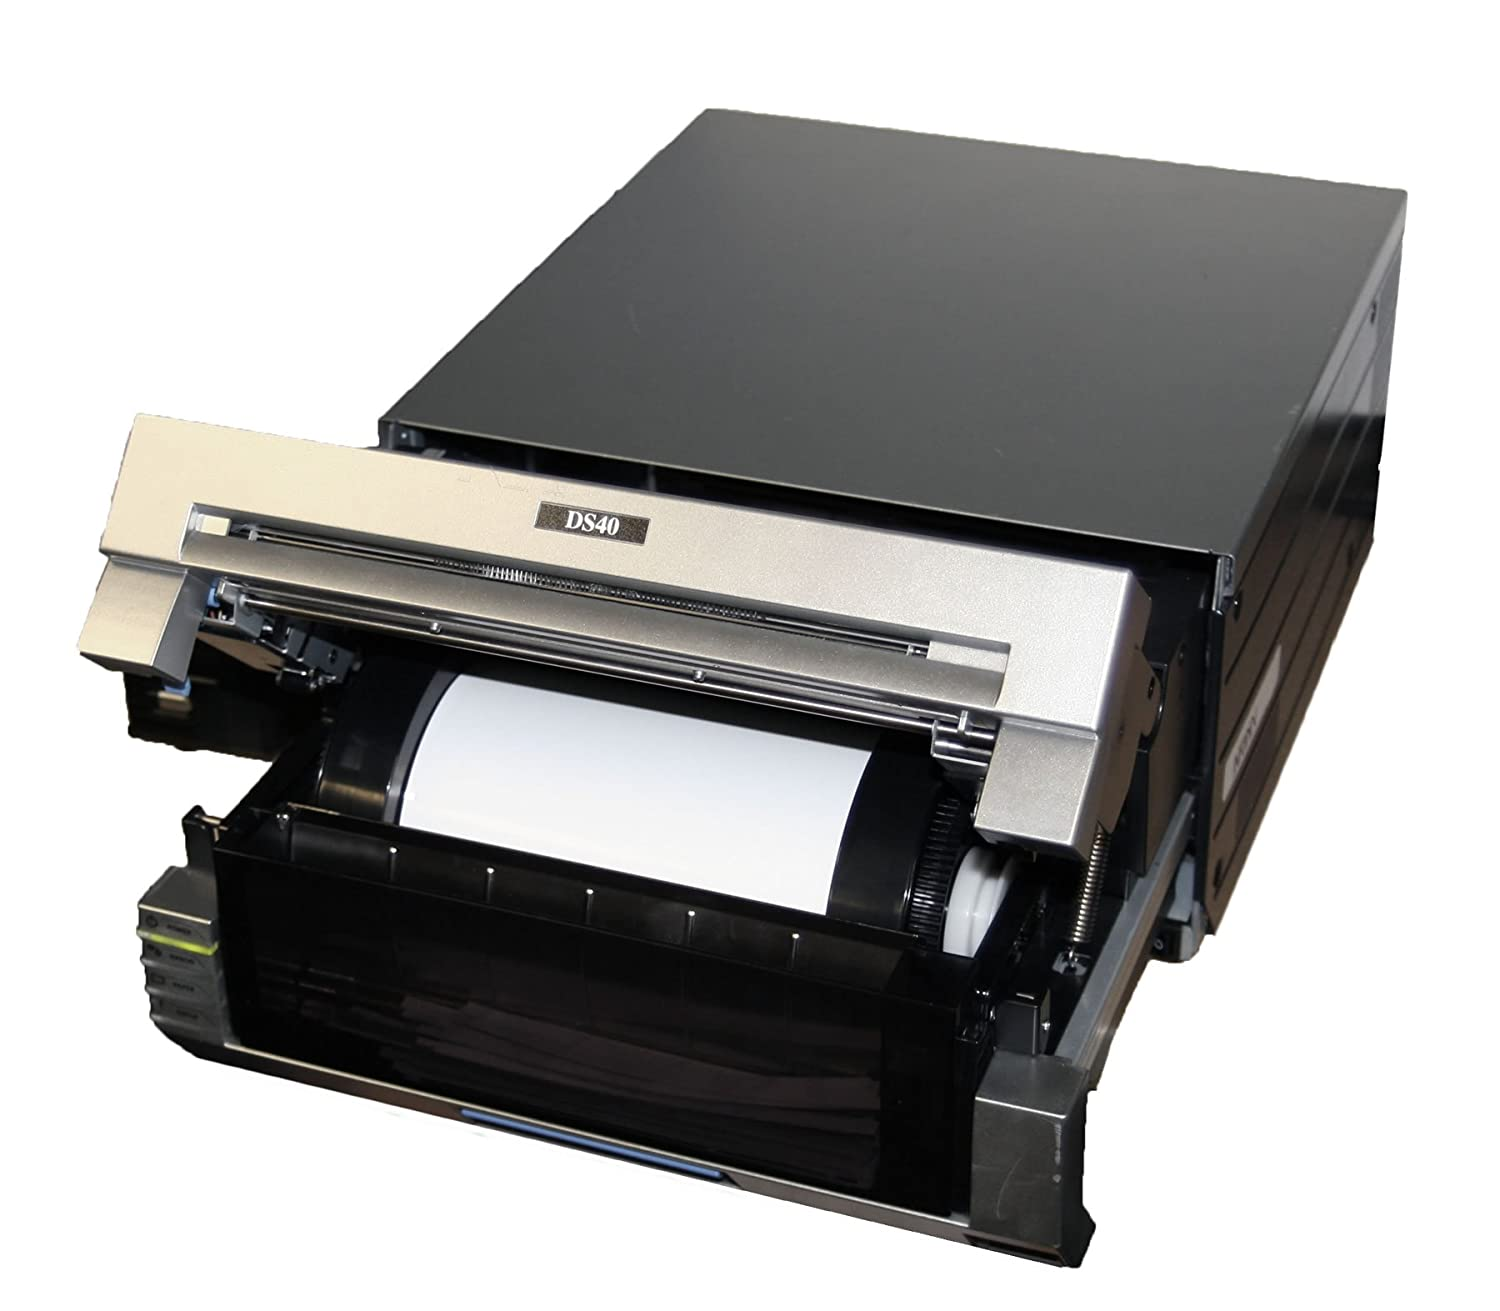 Amazon.com: DNP DS40 profesional Foto de color Impresora de ...